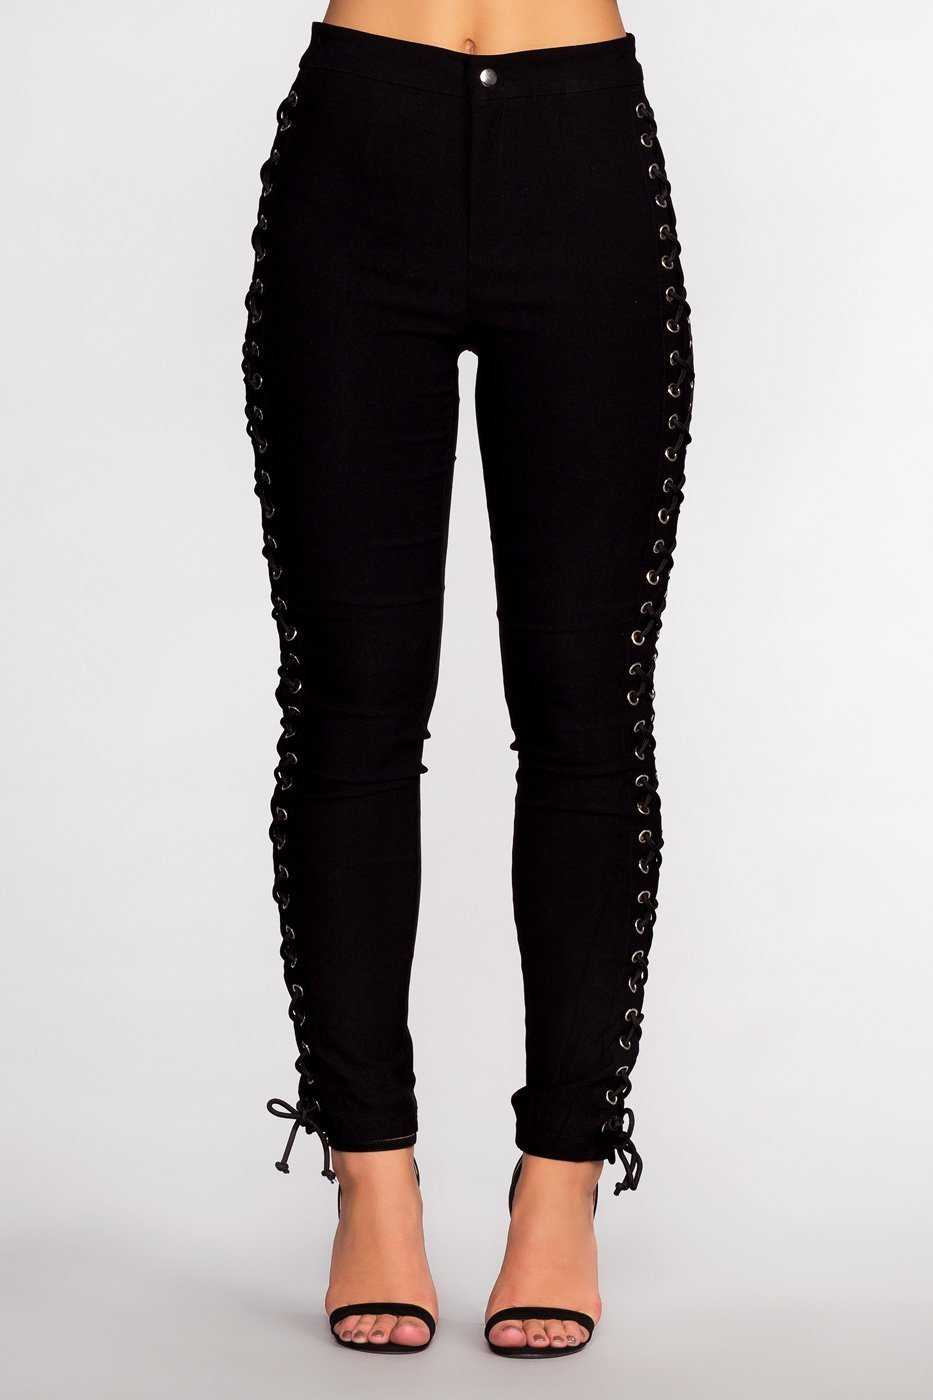 Pants - Lace Do It Right Pants - Black